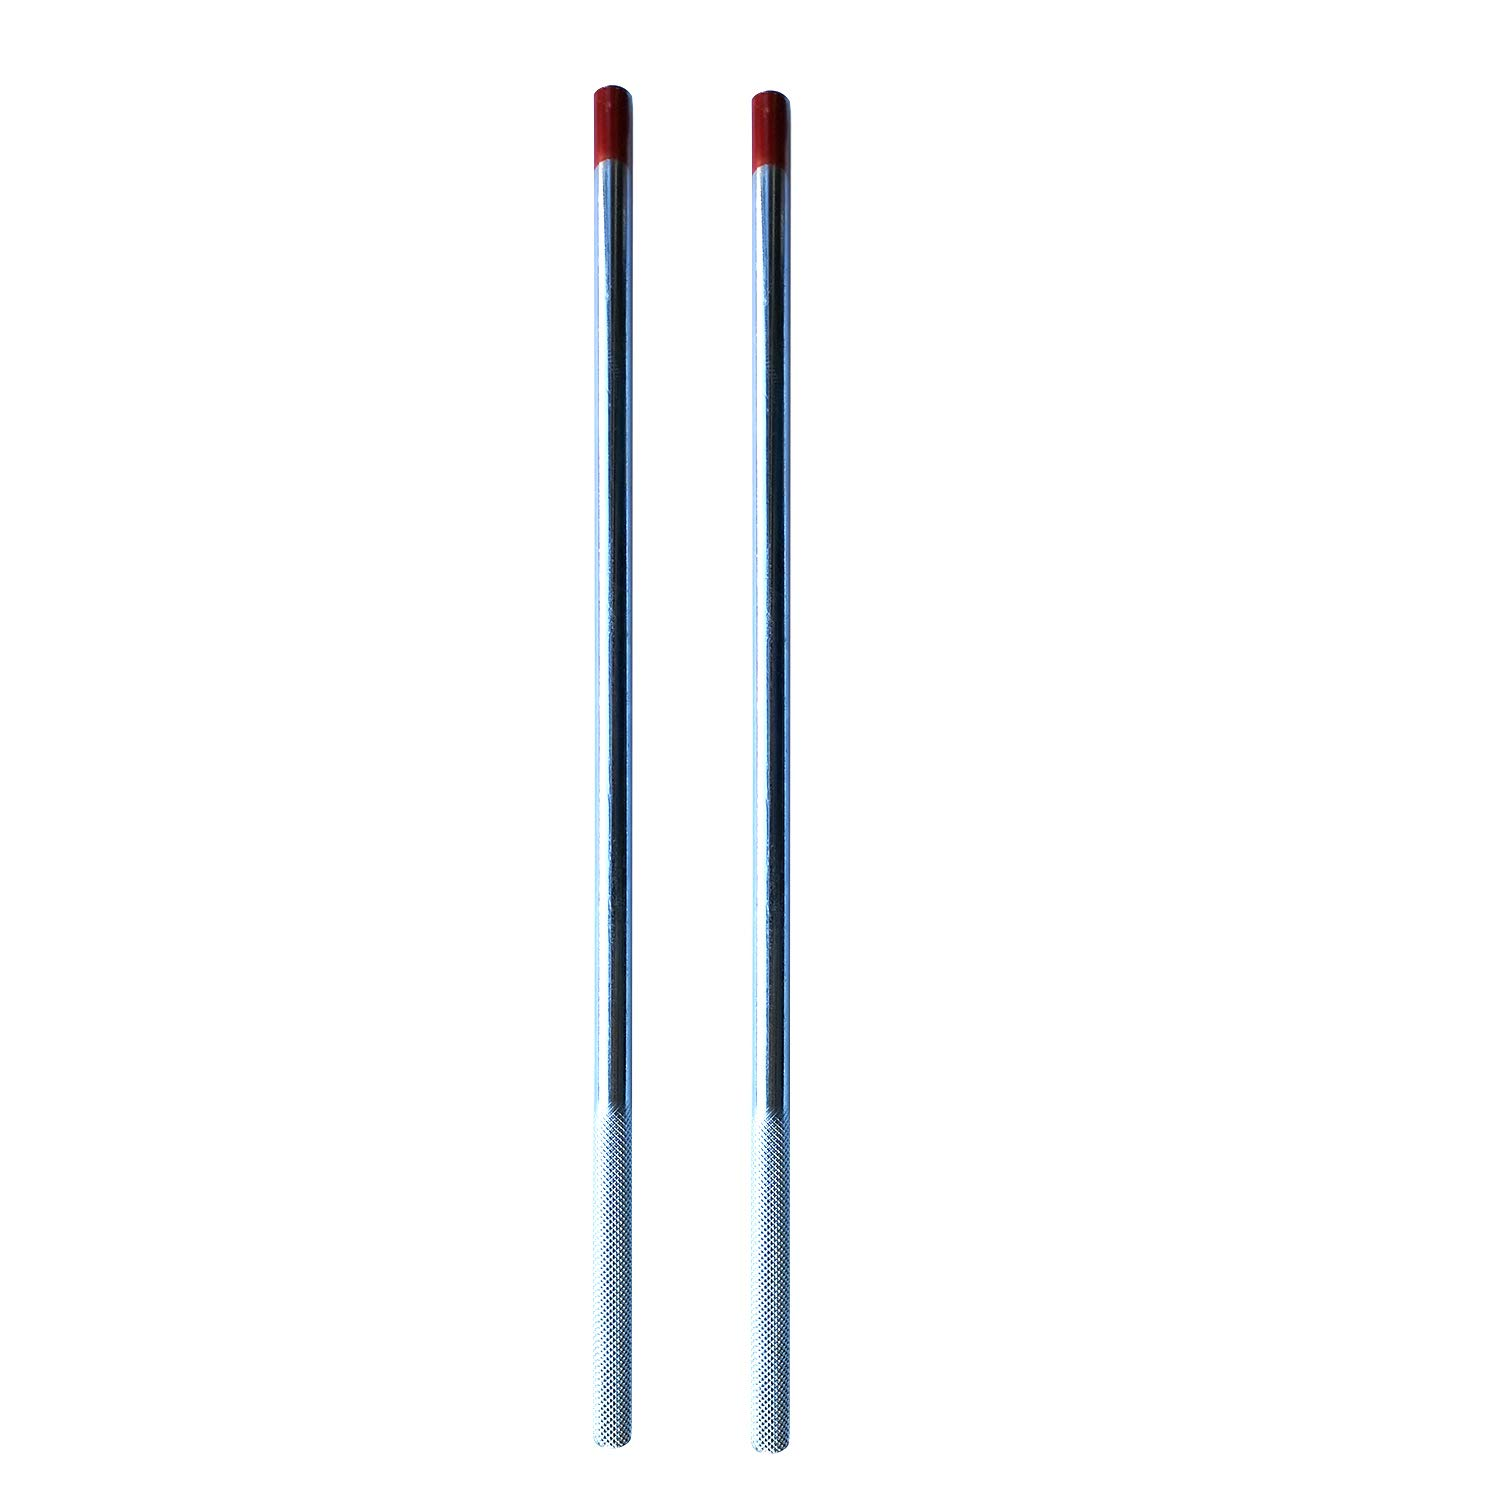 Premium 2Pcs Winding Bars with Non Slip Handle 1 2'' in Diameter X 16'' in Length Used for Garage Door Torsion Spring